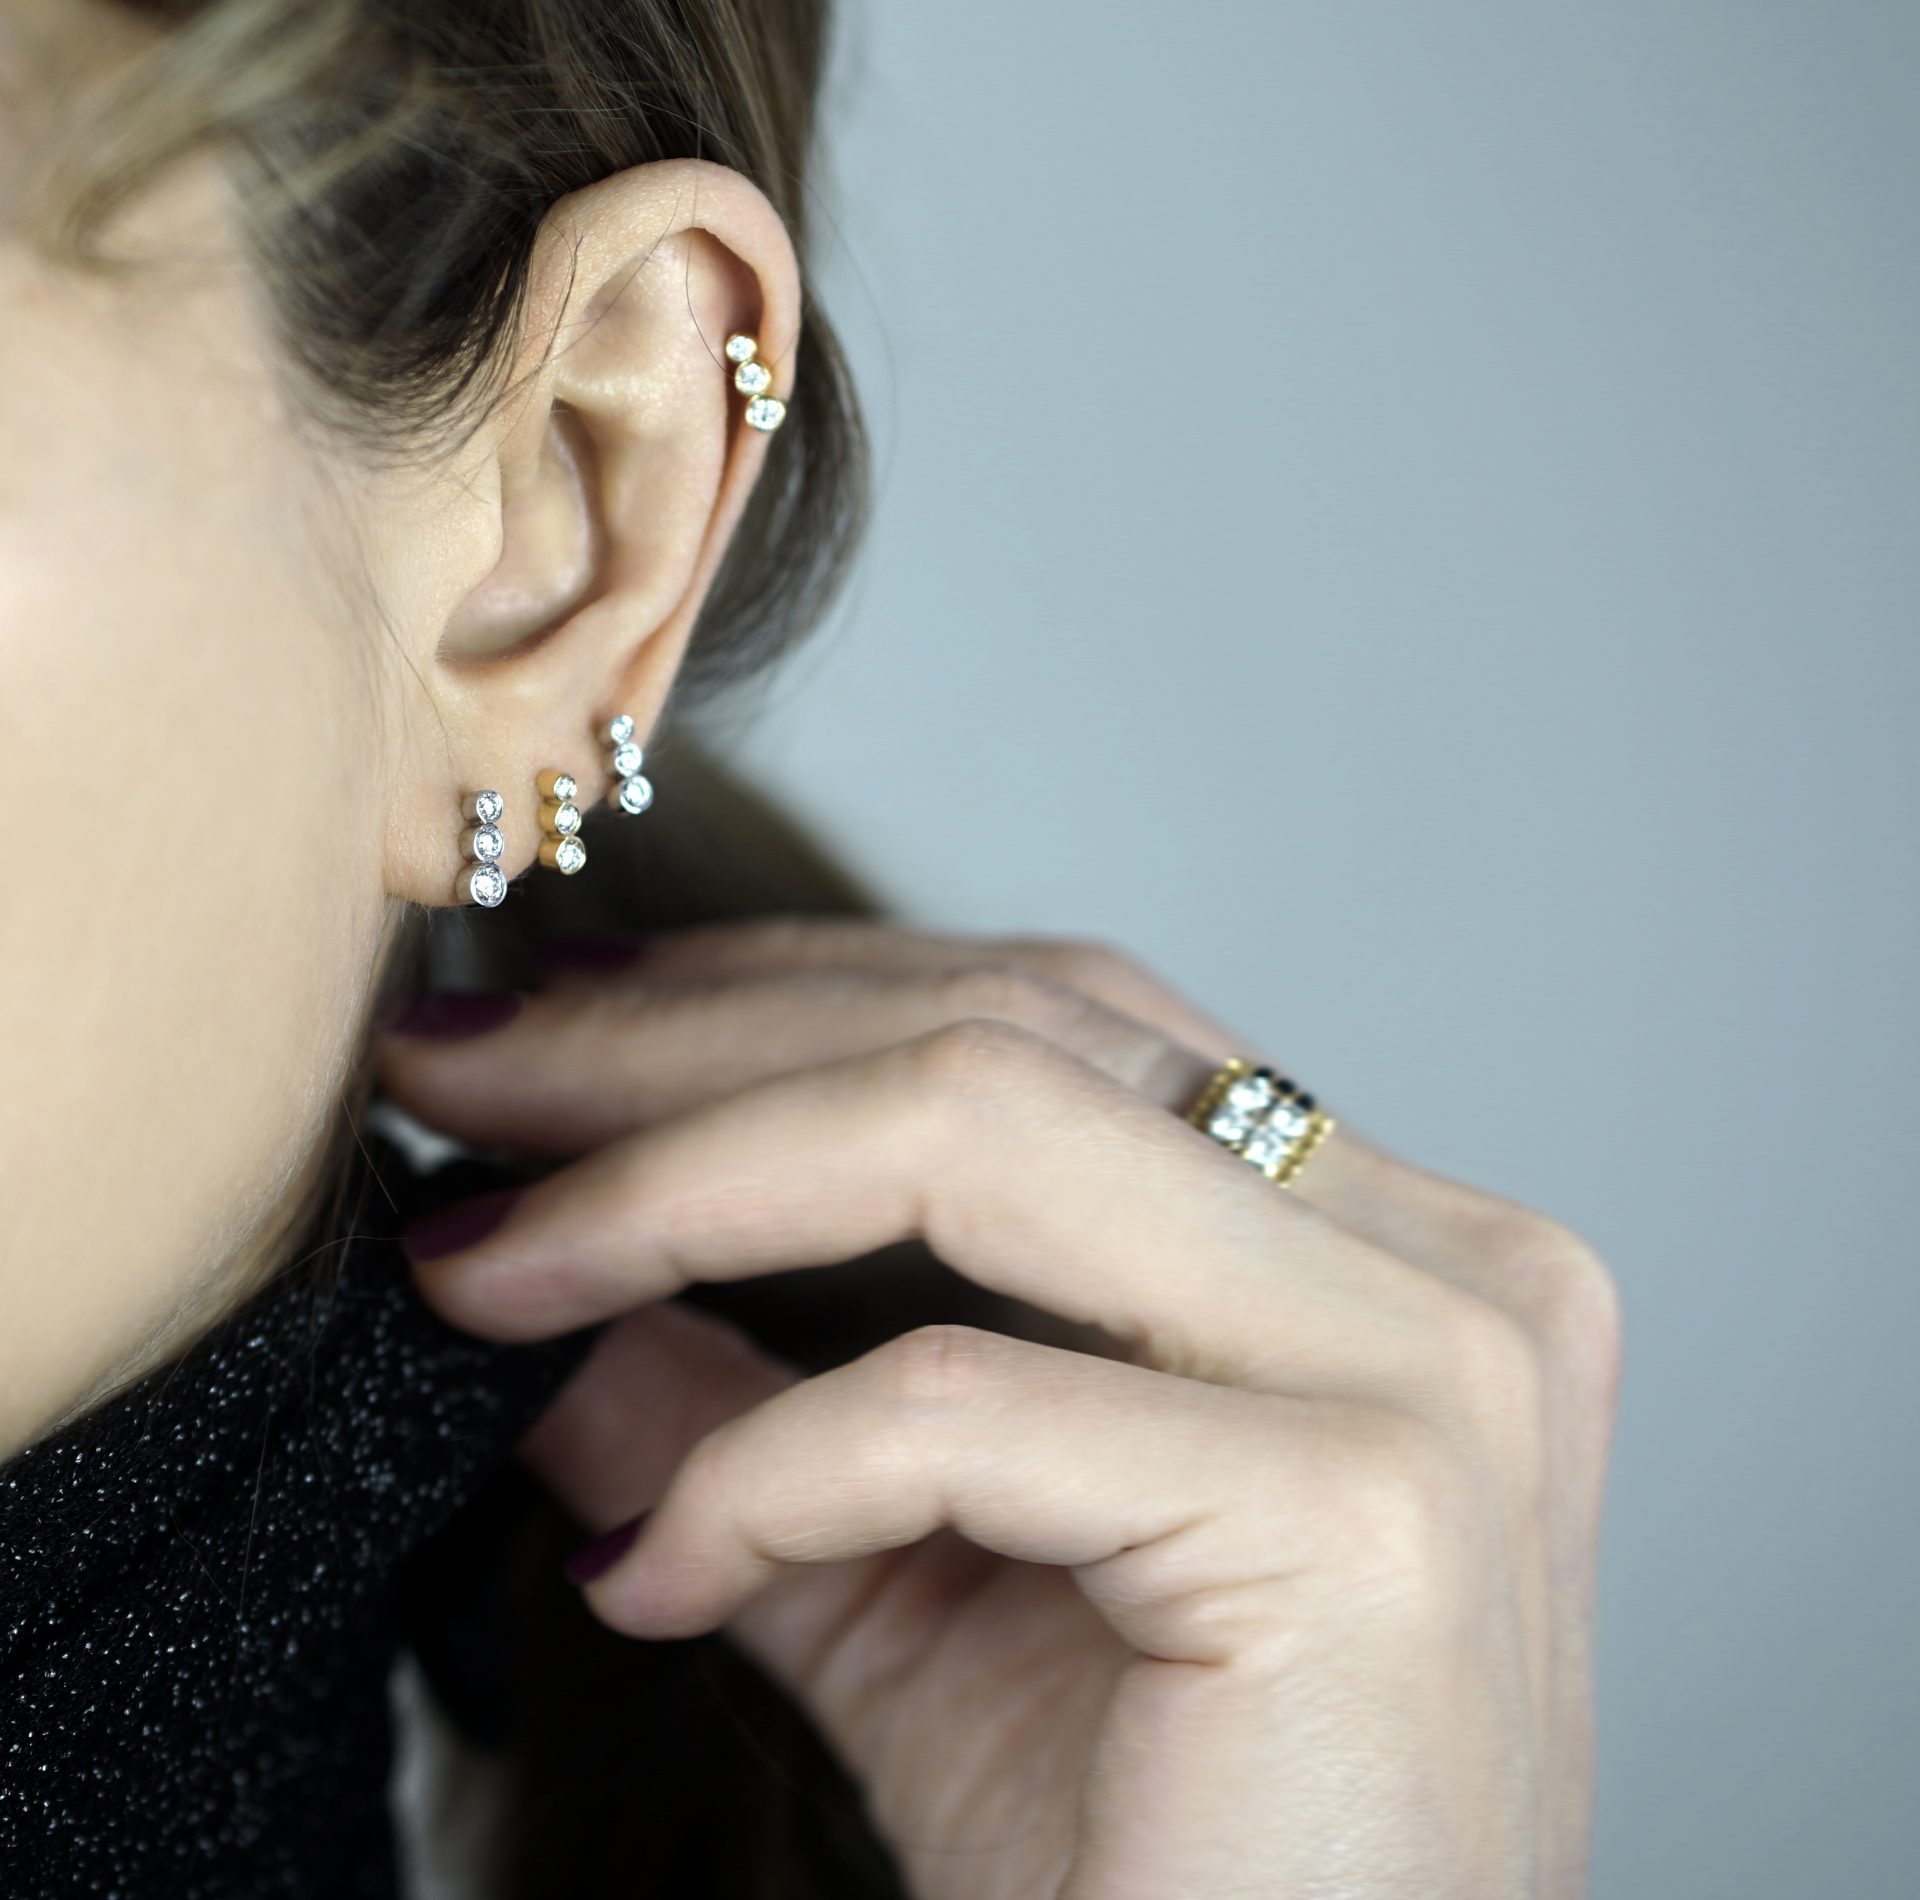 A very good choice for multiple ear piercing combinations in 2021